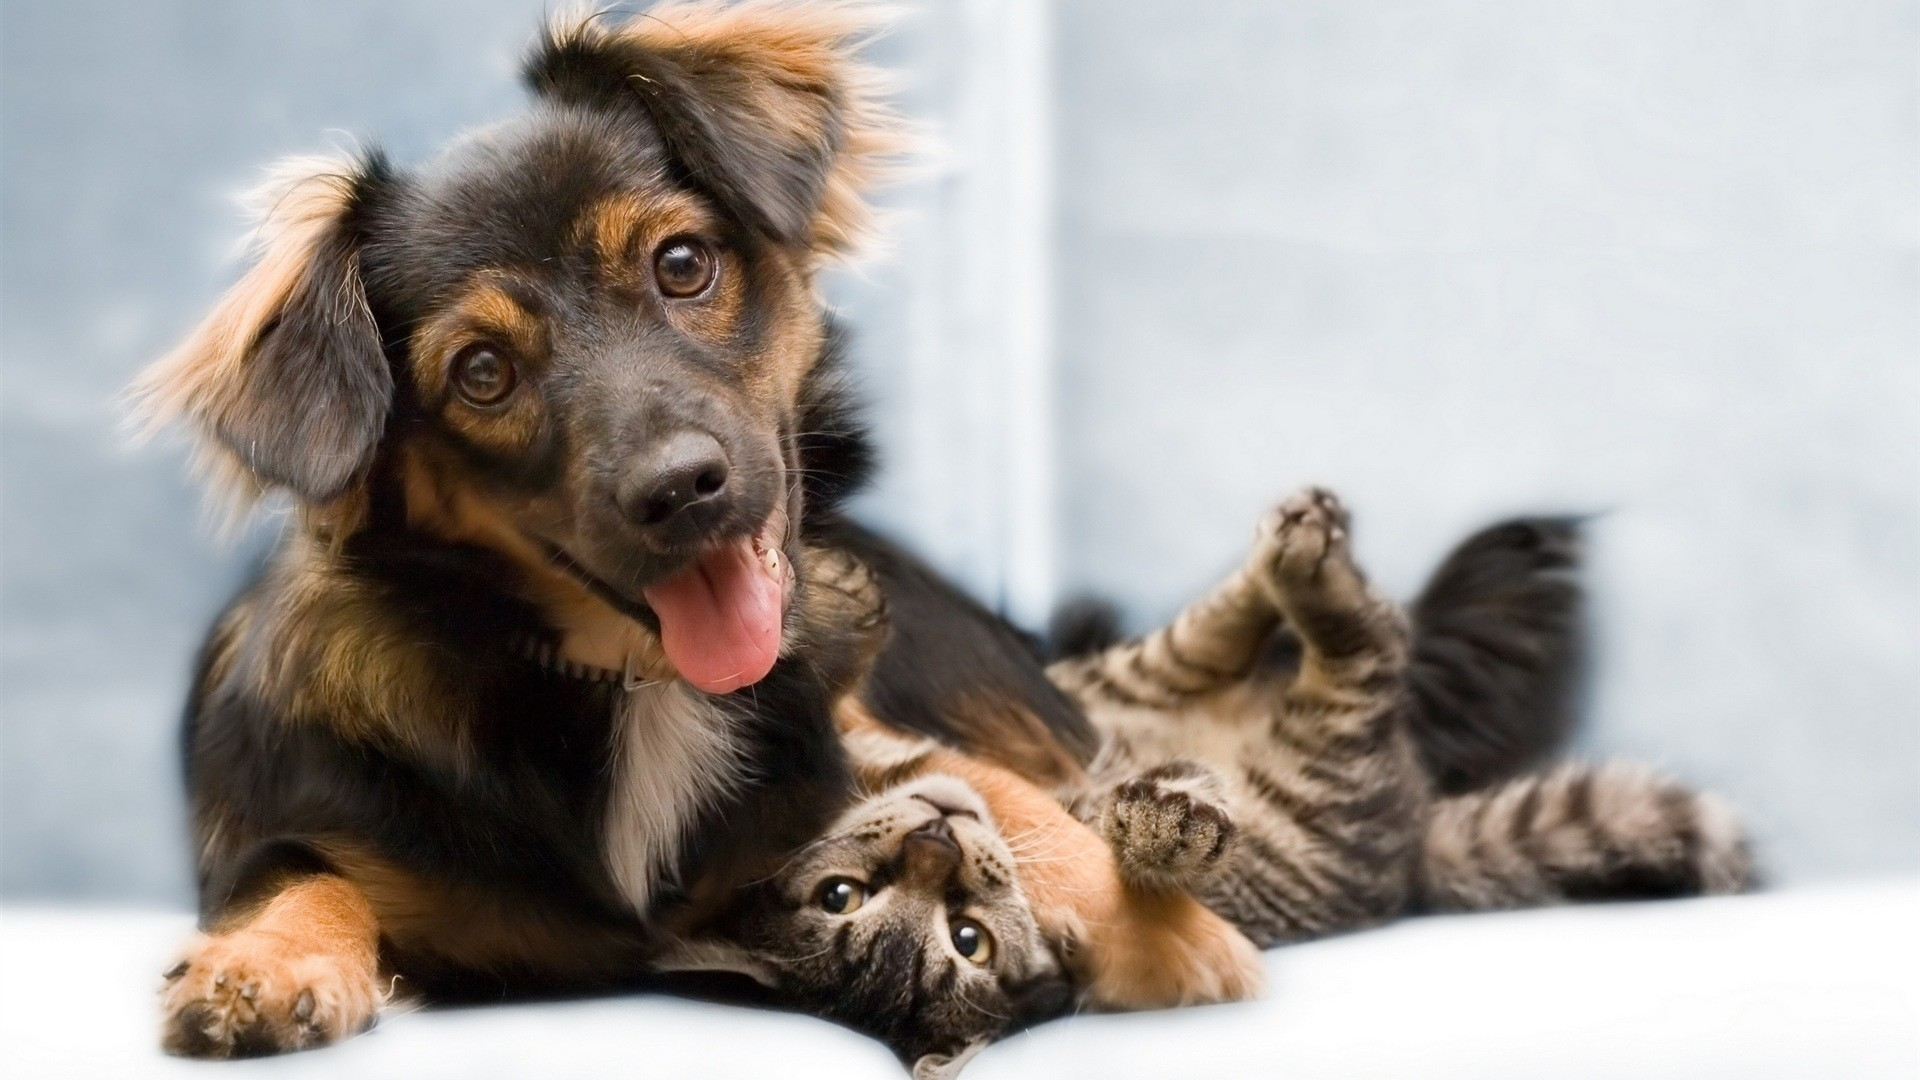 cats and dogs – Friendship | Download Desktop Wallpapers – Suit Up .